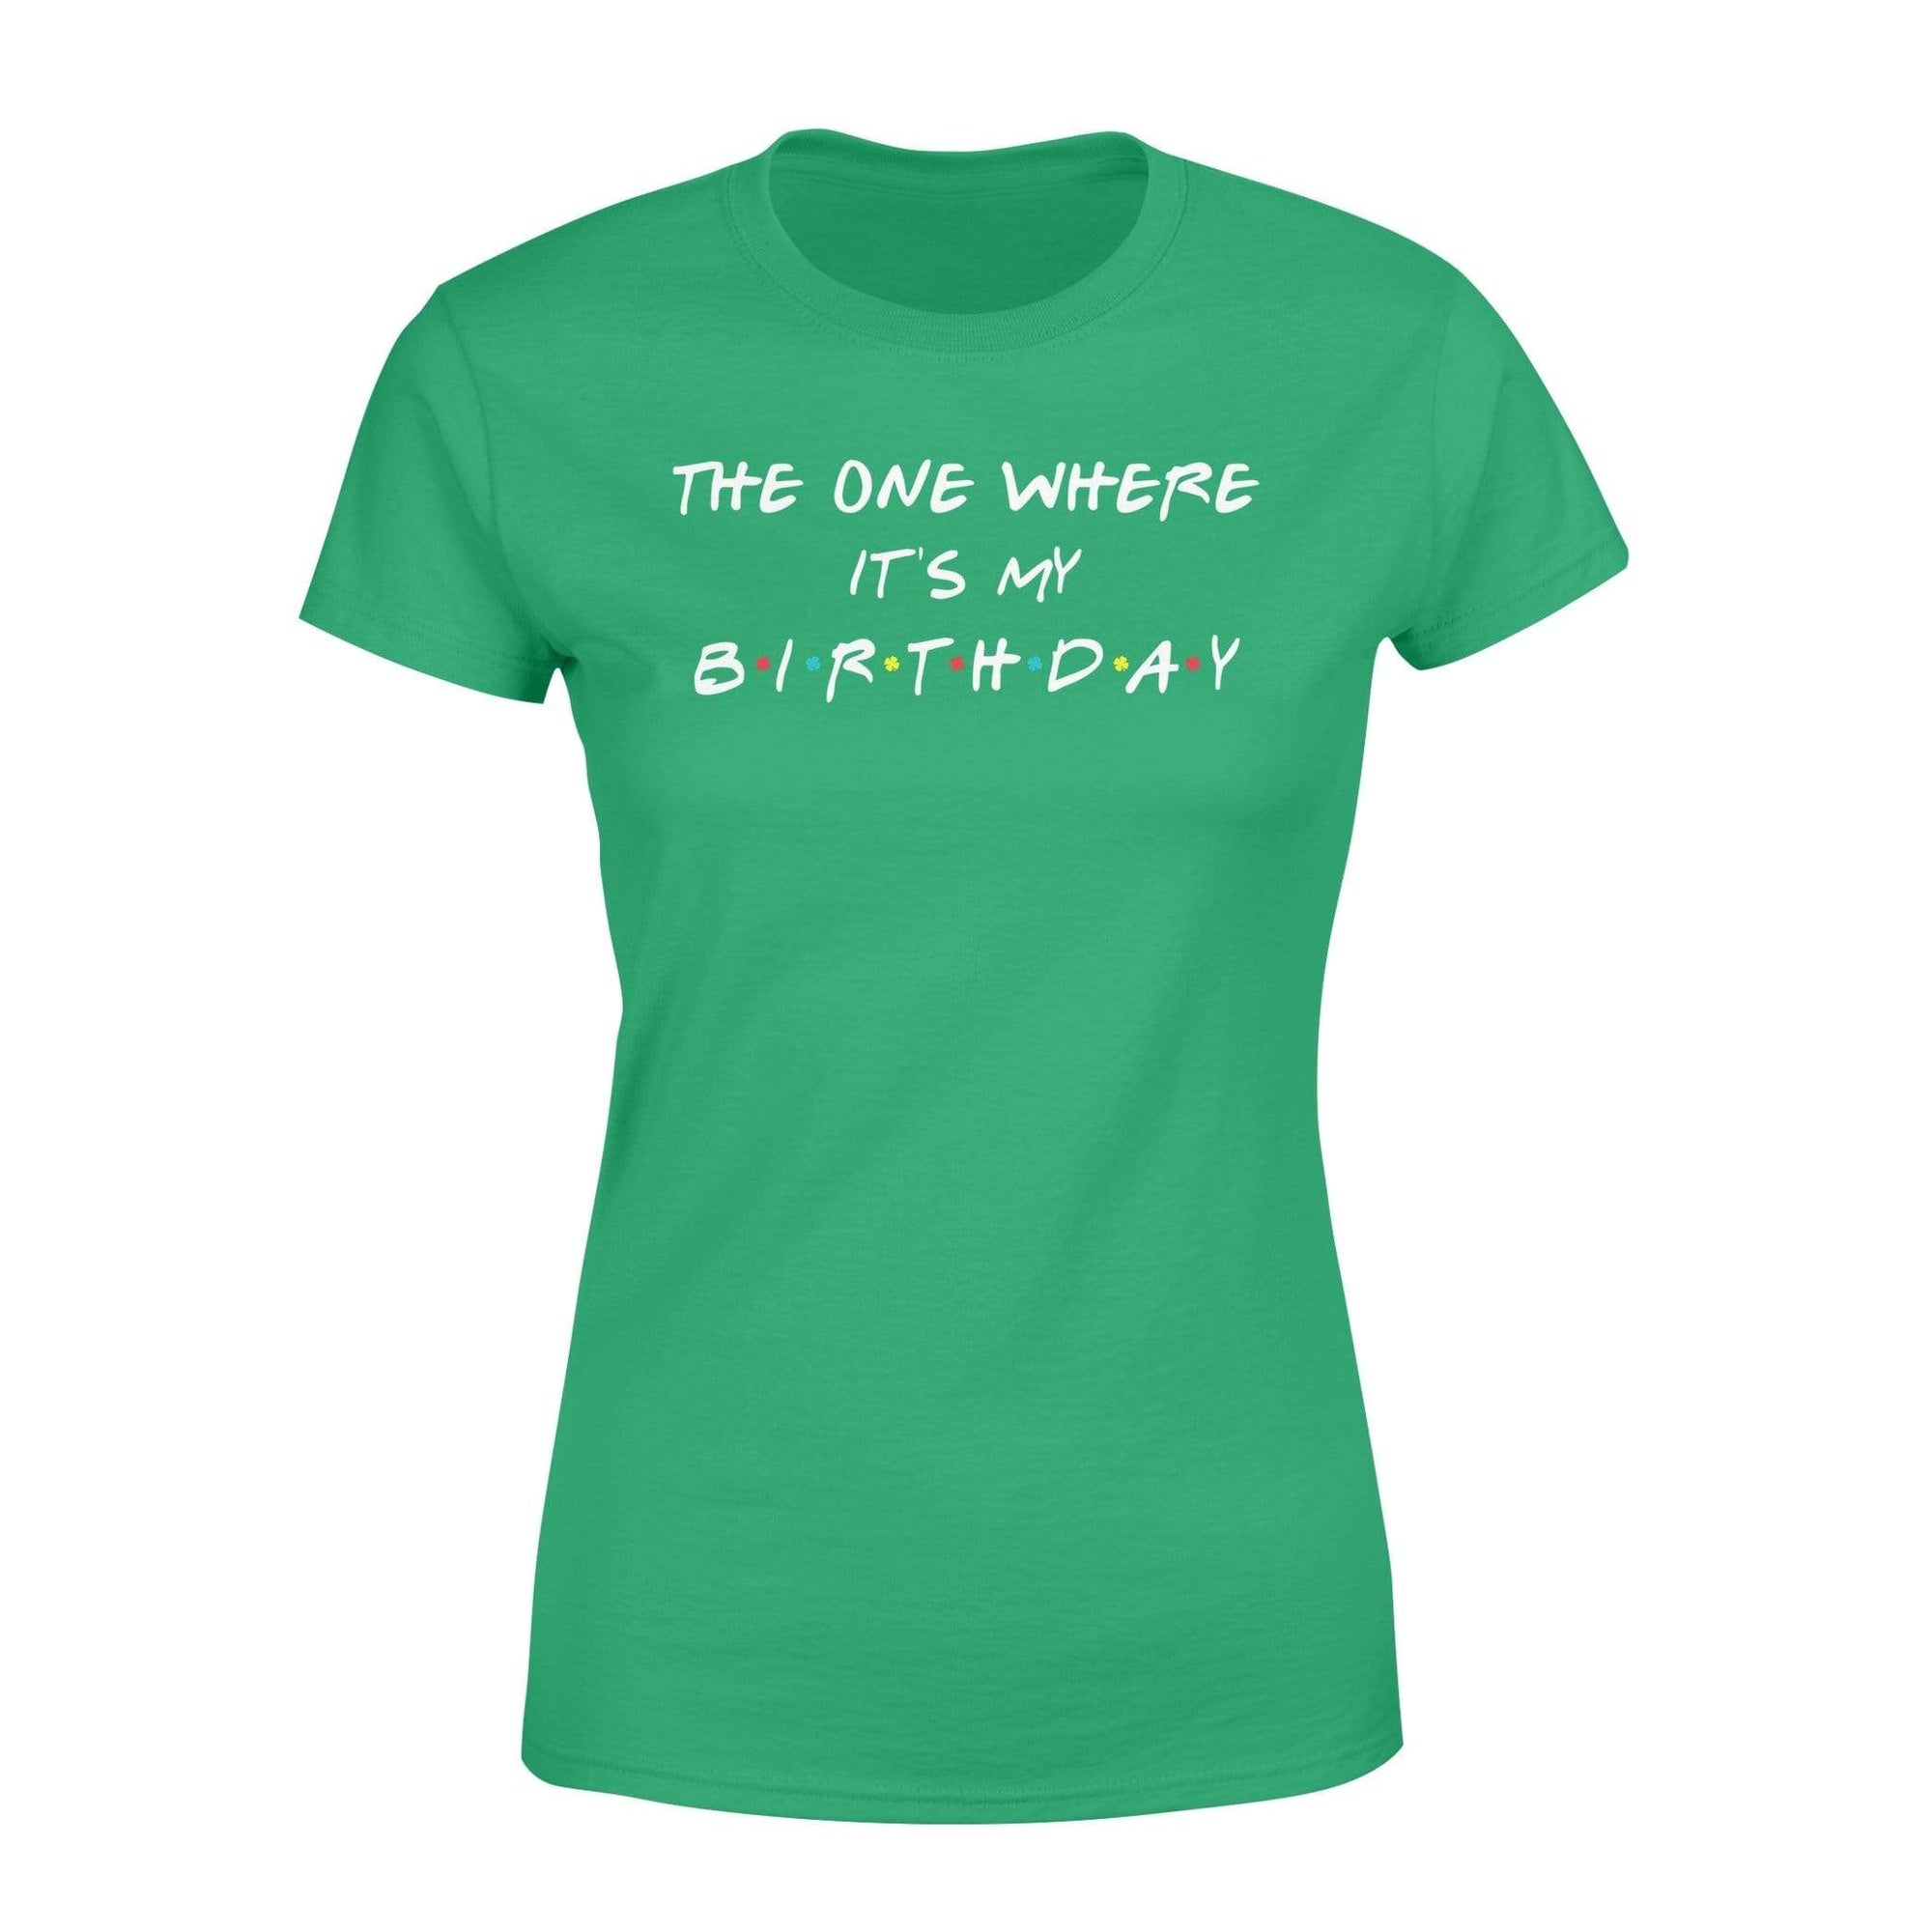 Clothing The One Where It's My Birthday FR St Patrick Day Shirt - Standard Women's T-shirt - DSAPP XS / Kelly